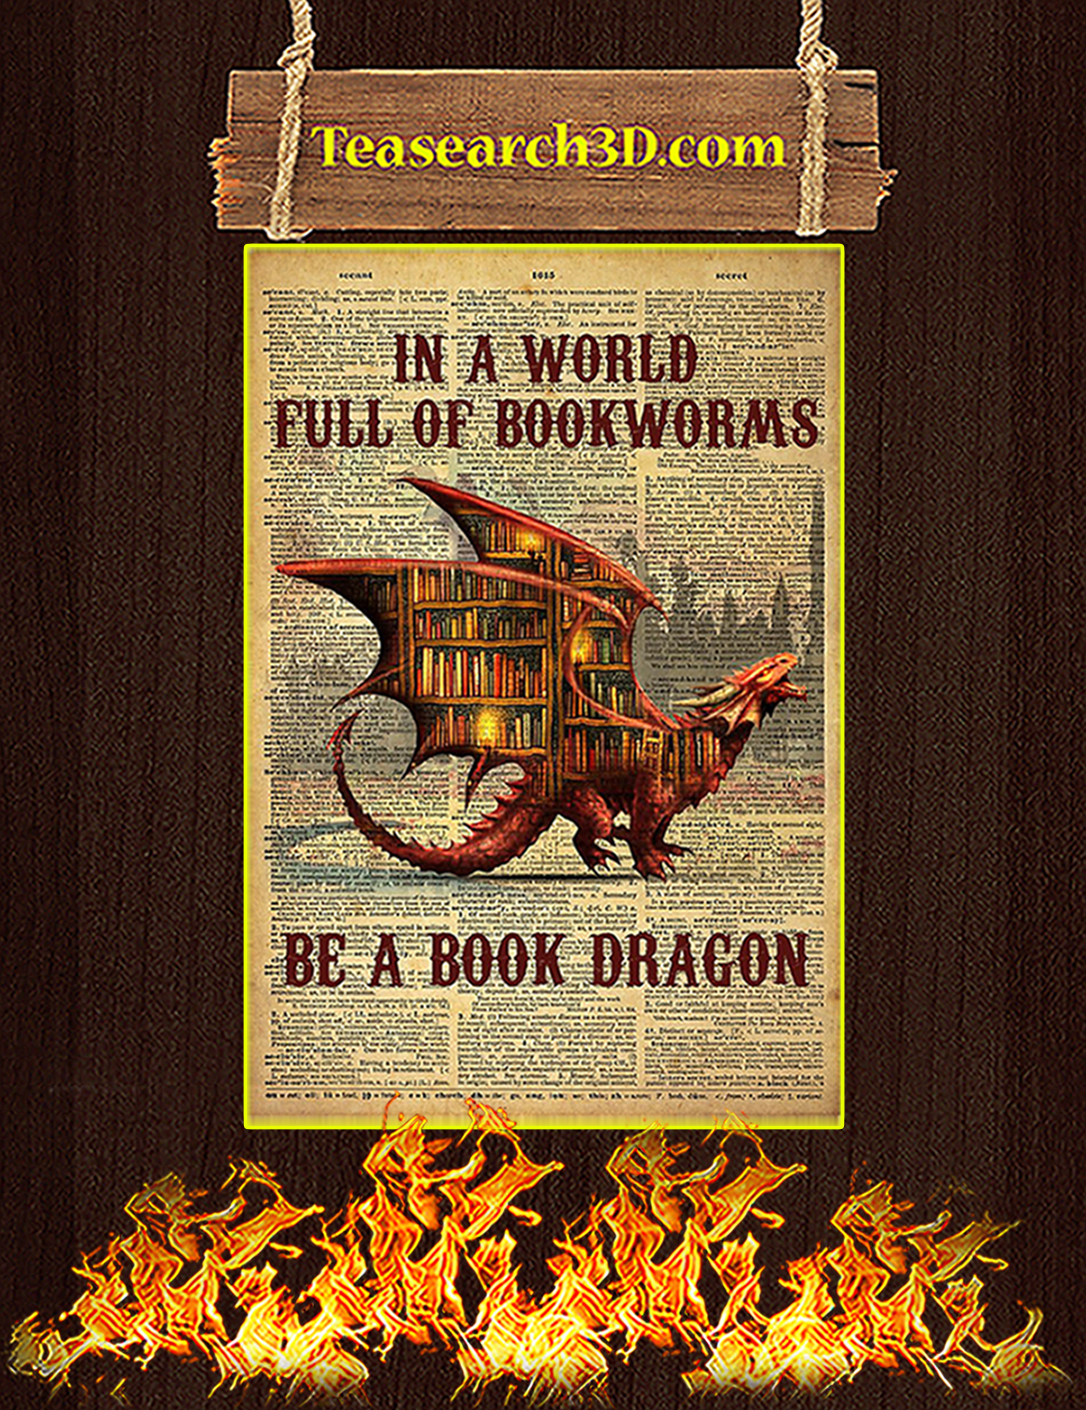 In a world full of bookworms be a book dragon poster A2